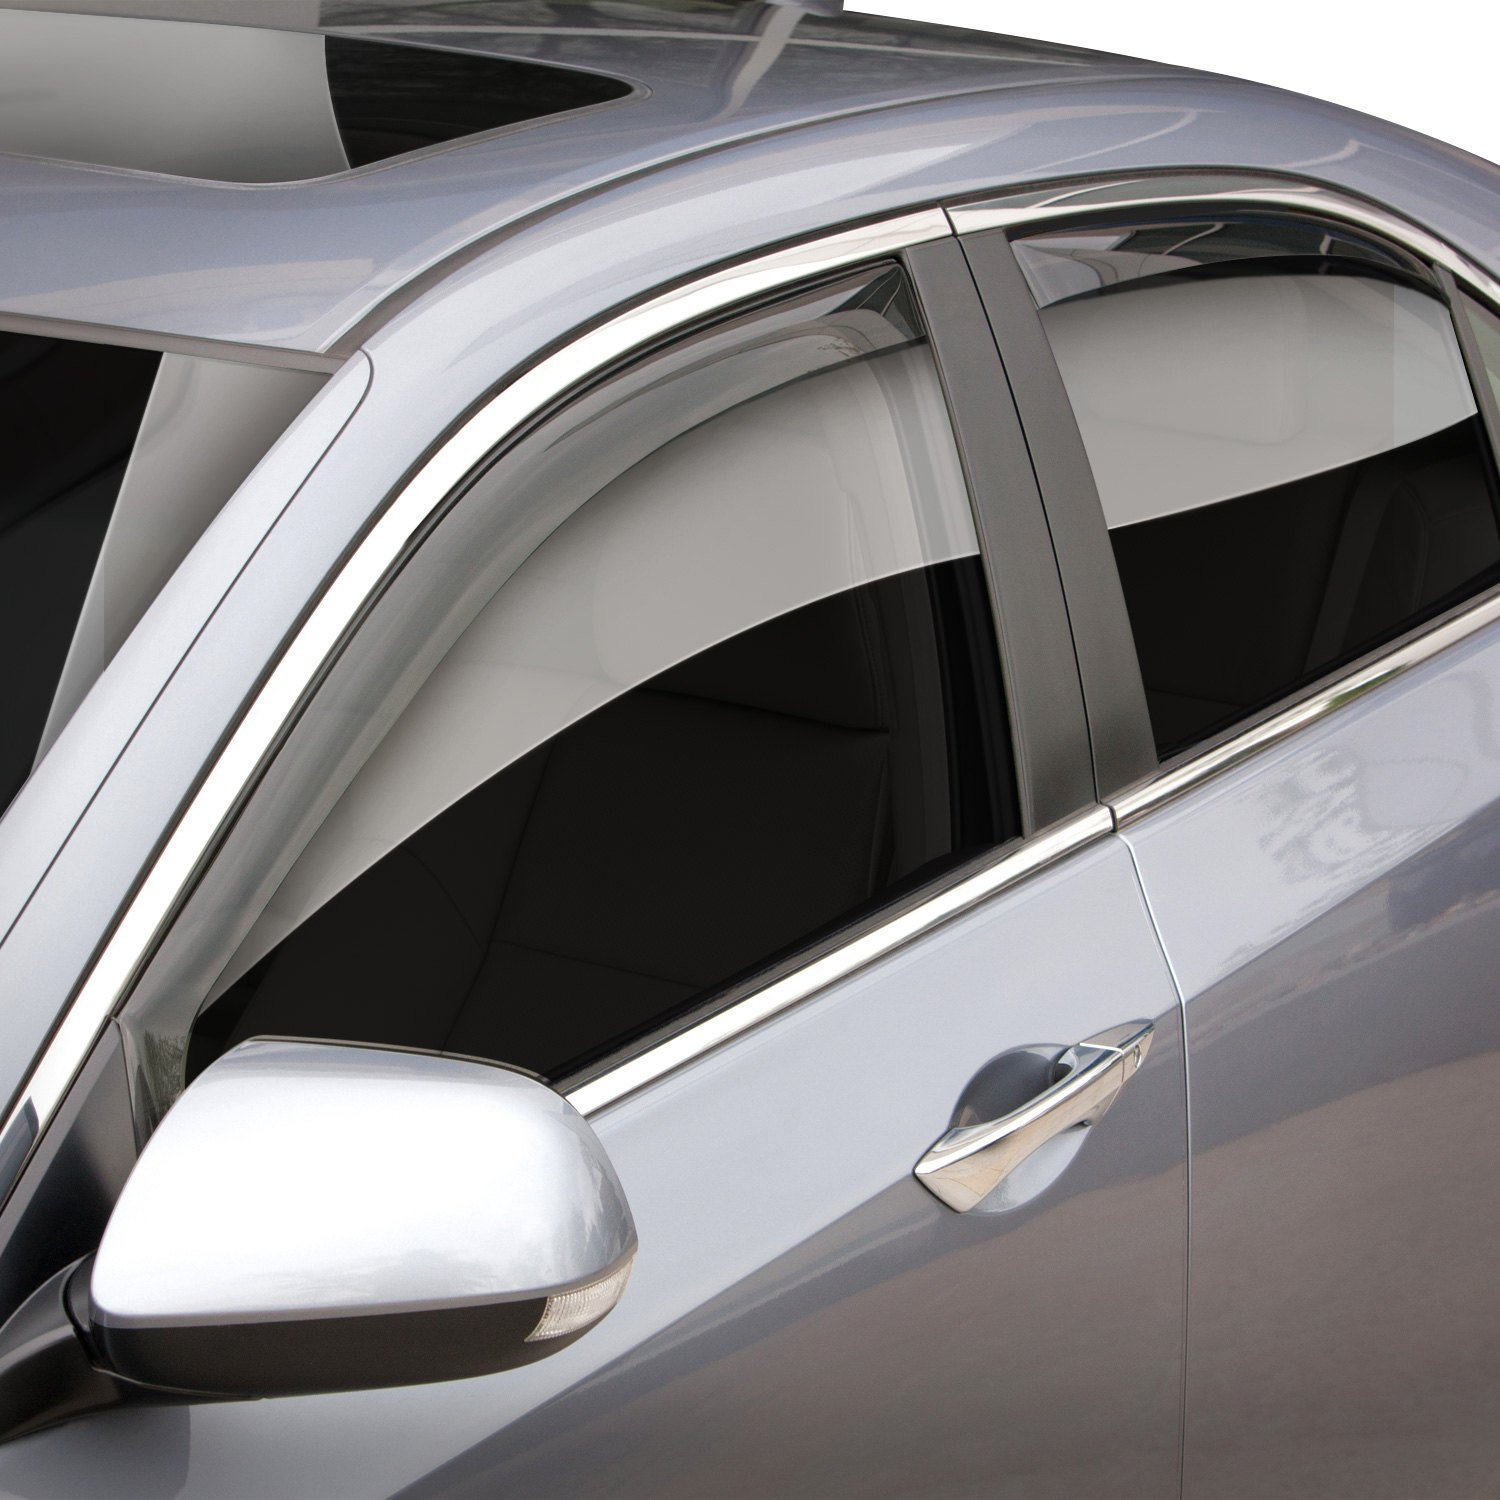 weathertech acura tsx 2009 in channel side window deflectors rh carid com Used Acura TSX 09 Used Acura TSX 09